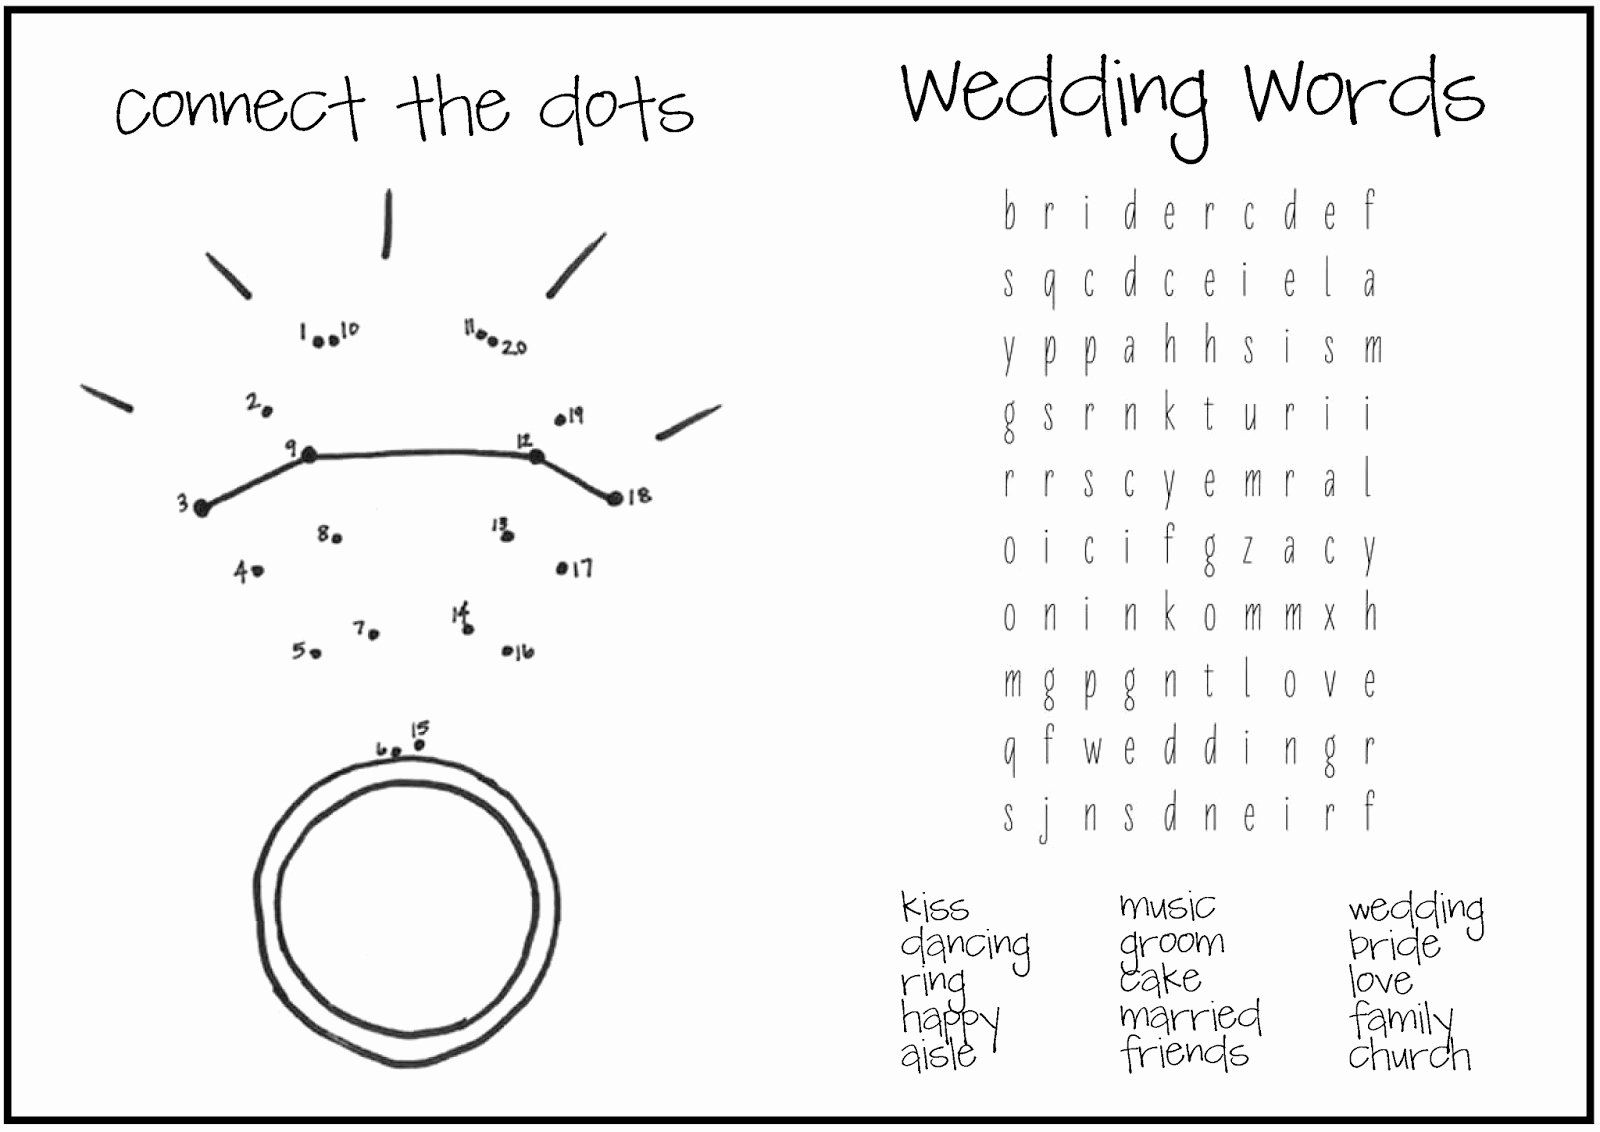 Wedding Activity Coloring Pages Luxury Redirecting To Wedding Coloring Pages Wedding Activities Wedding With Kids